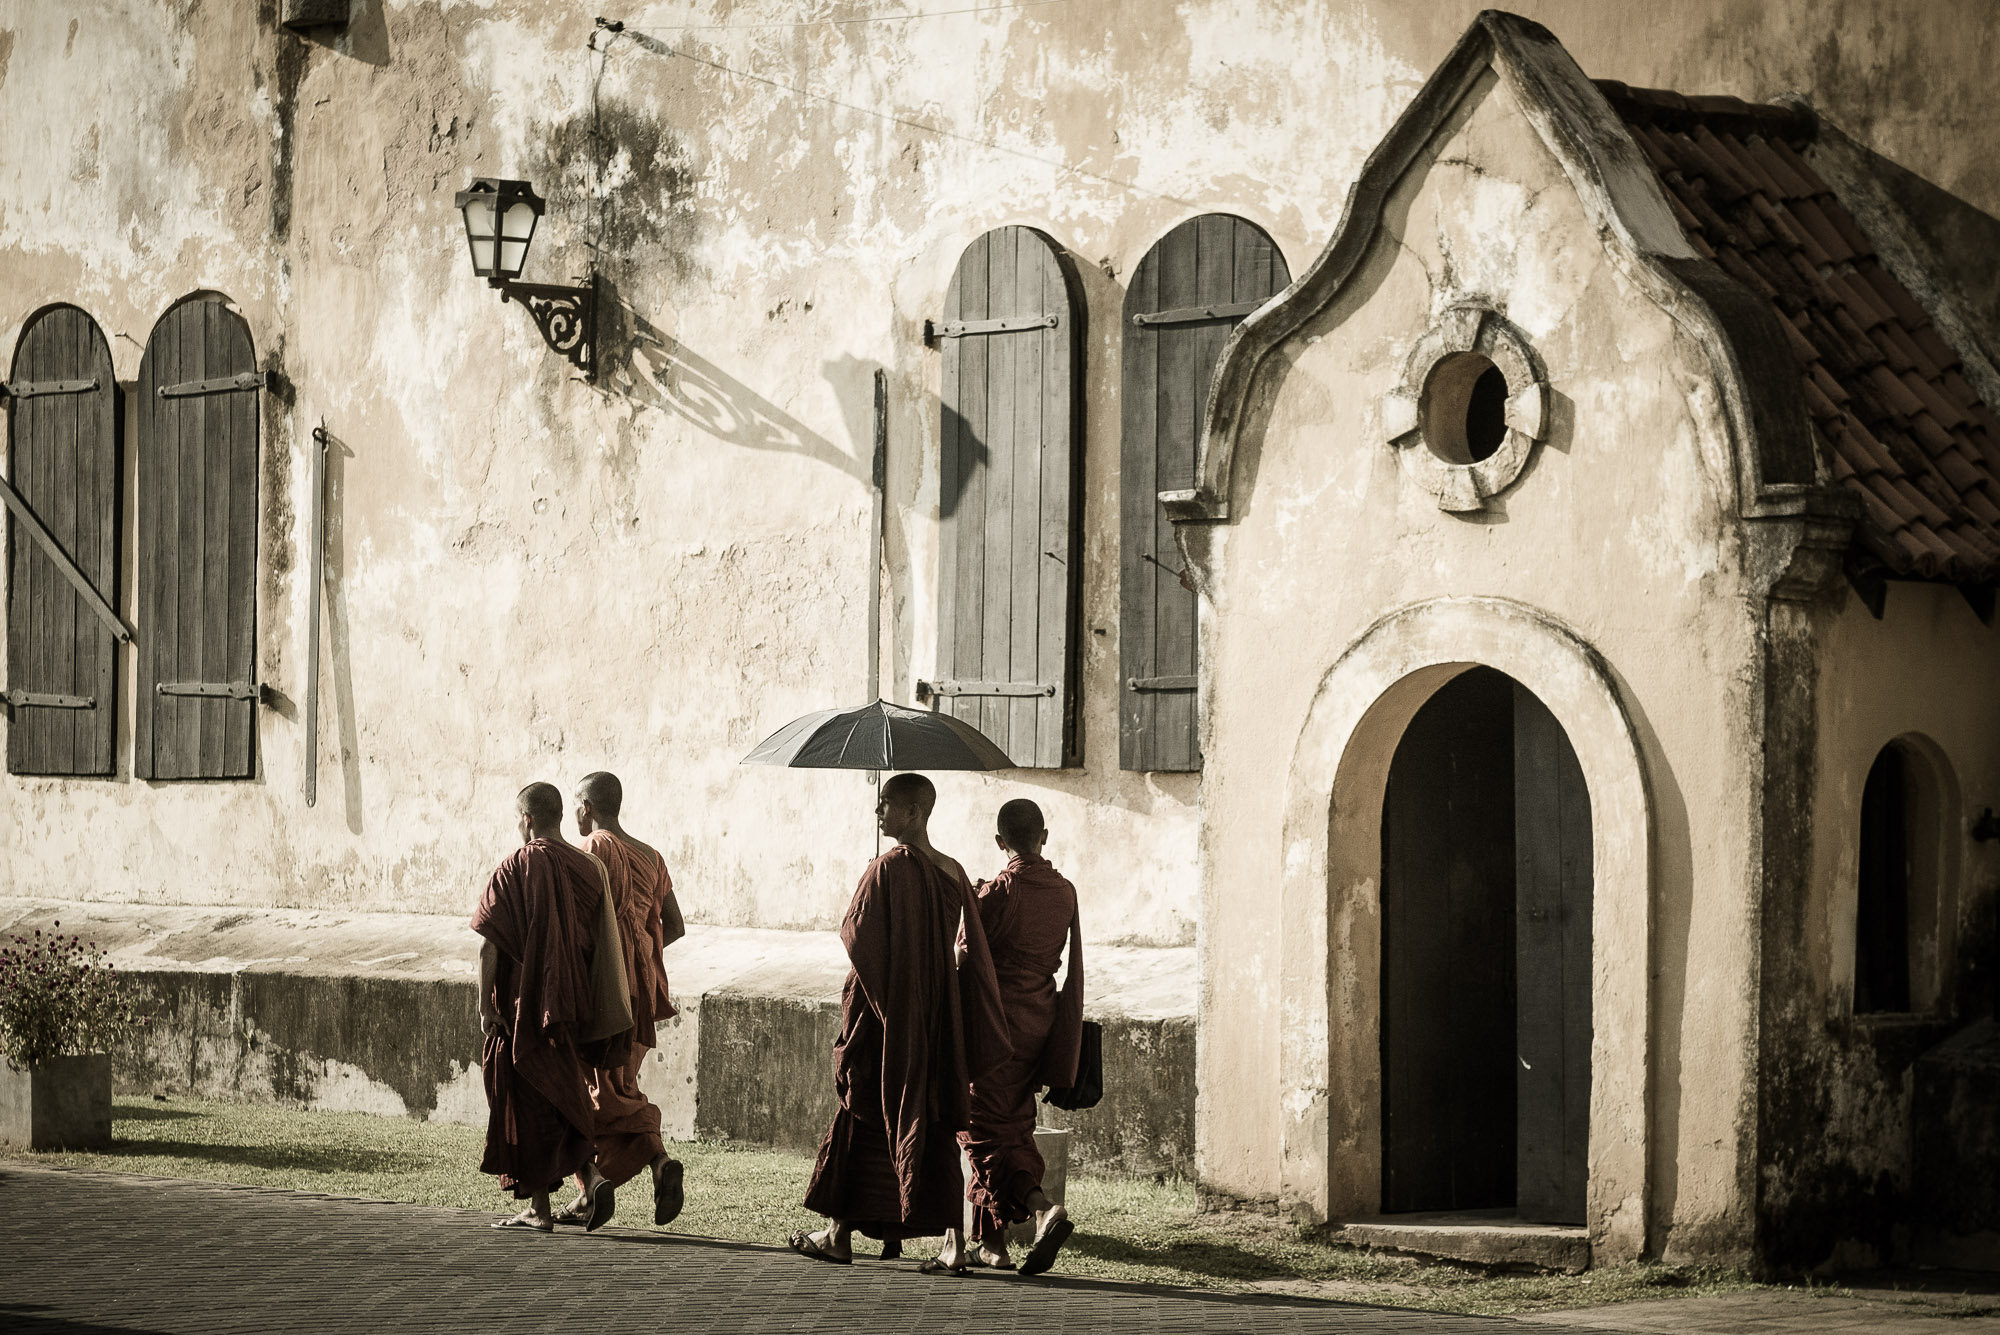 Monks in Galle, Sri Lanka